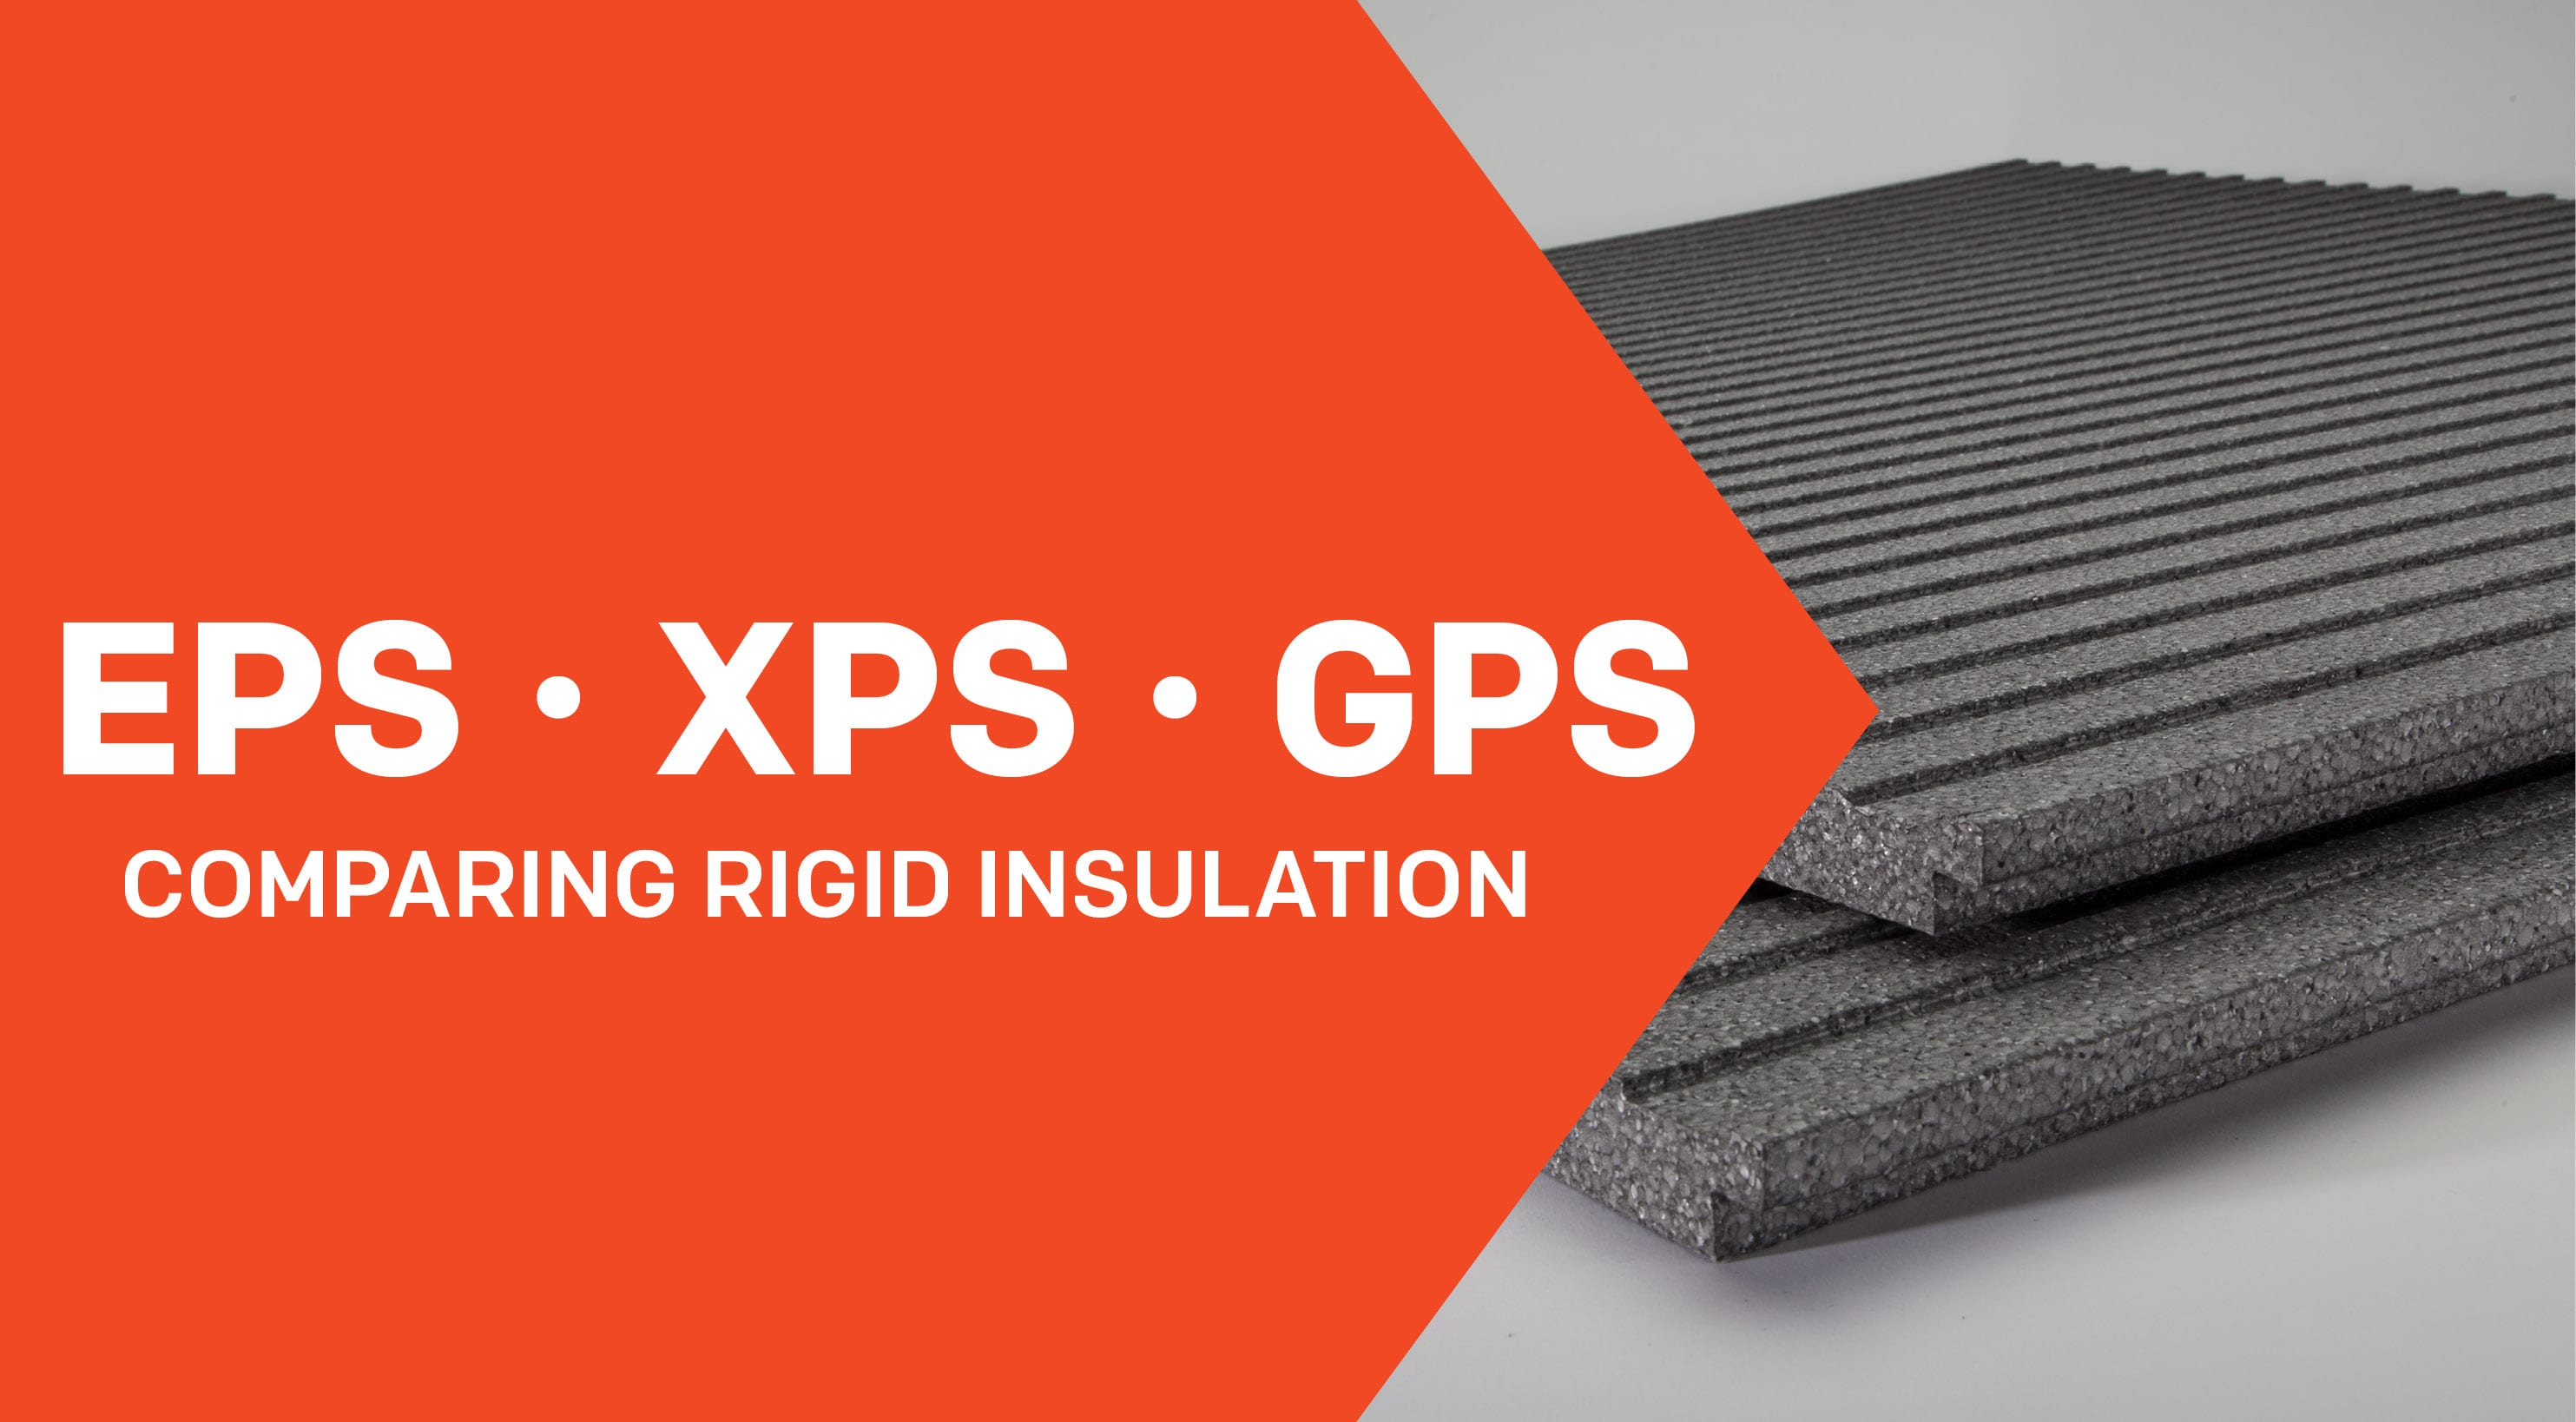 Rigid Insulation Types Eps Vs Xps Vs Gps Comparing Different Types Of Insulation